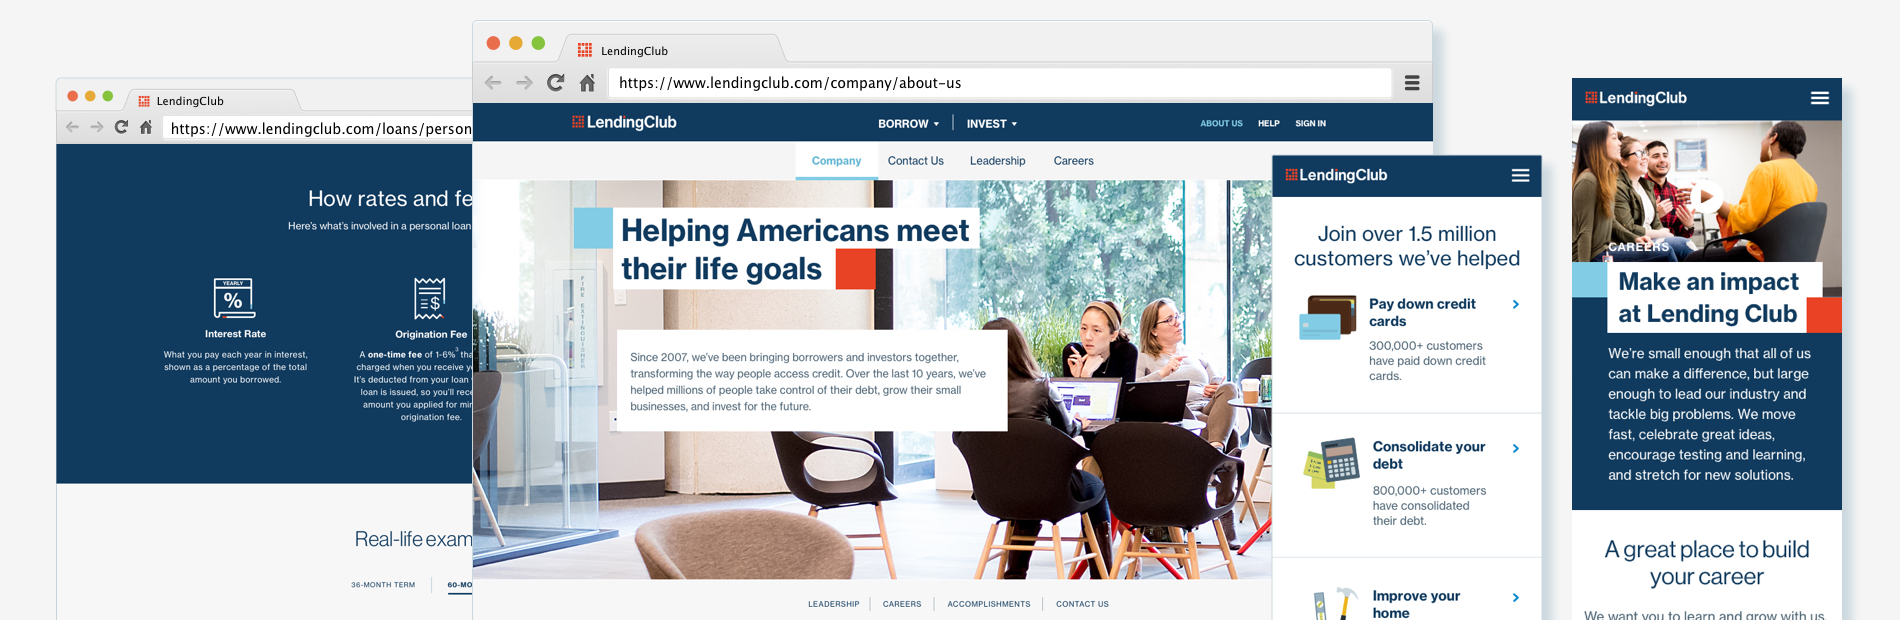 Lending Club Website Redesign - Liz Chang